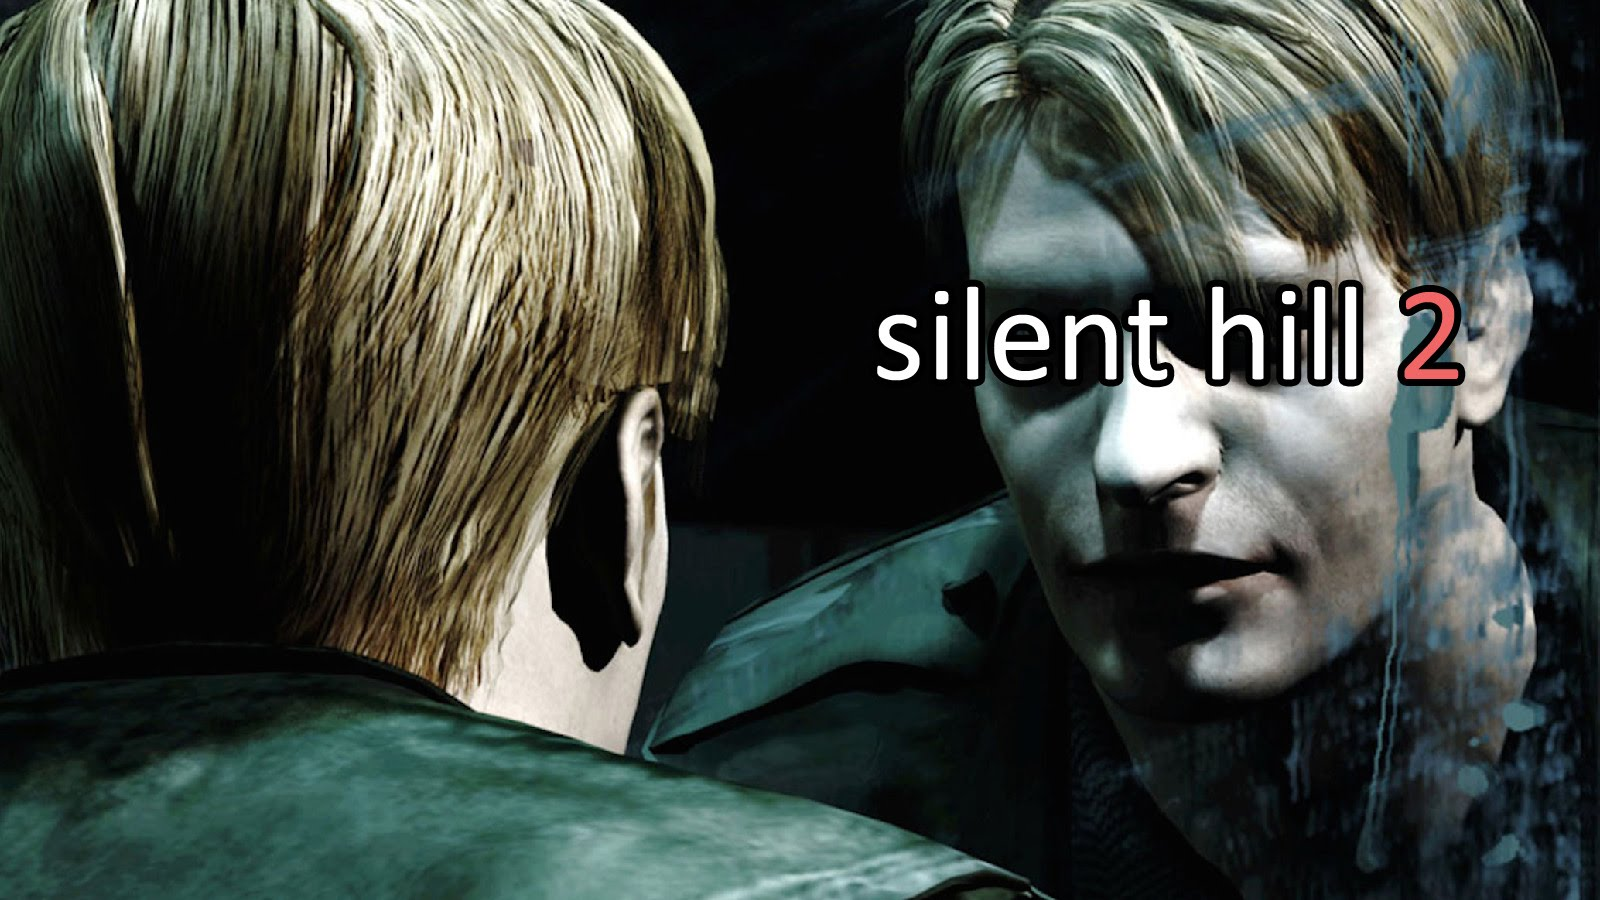 Silent Hill 2 Wallpaper Hd